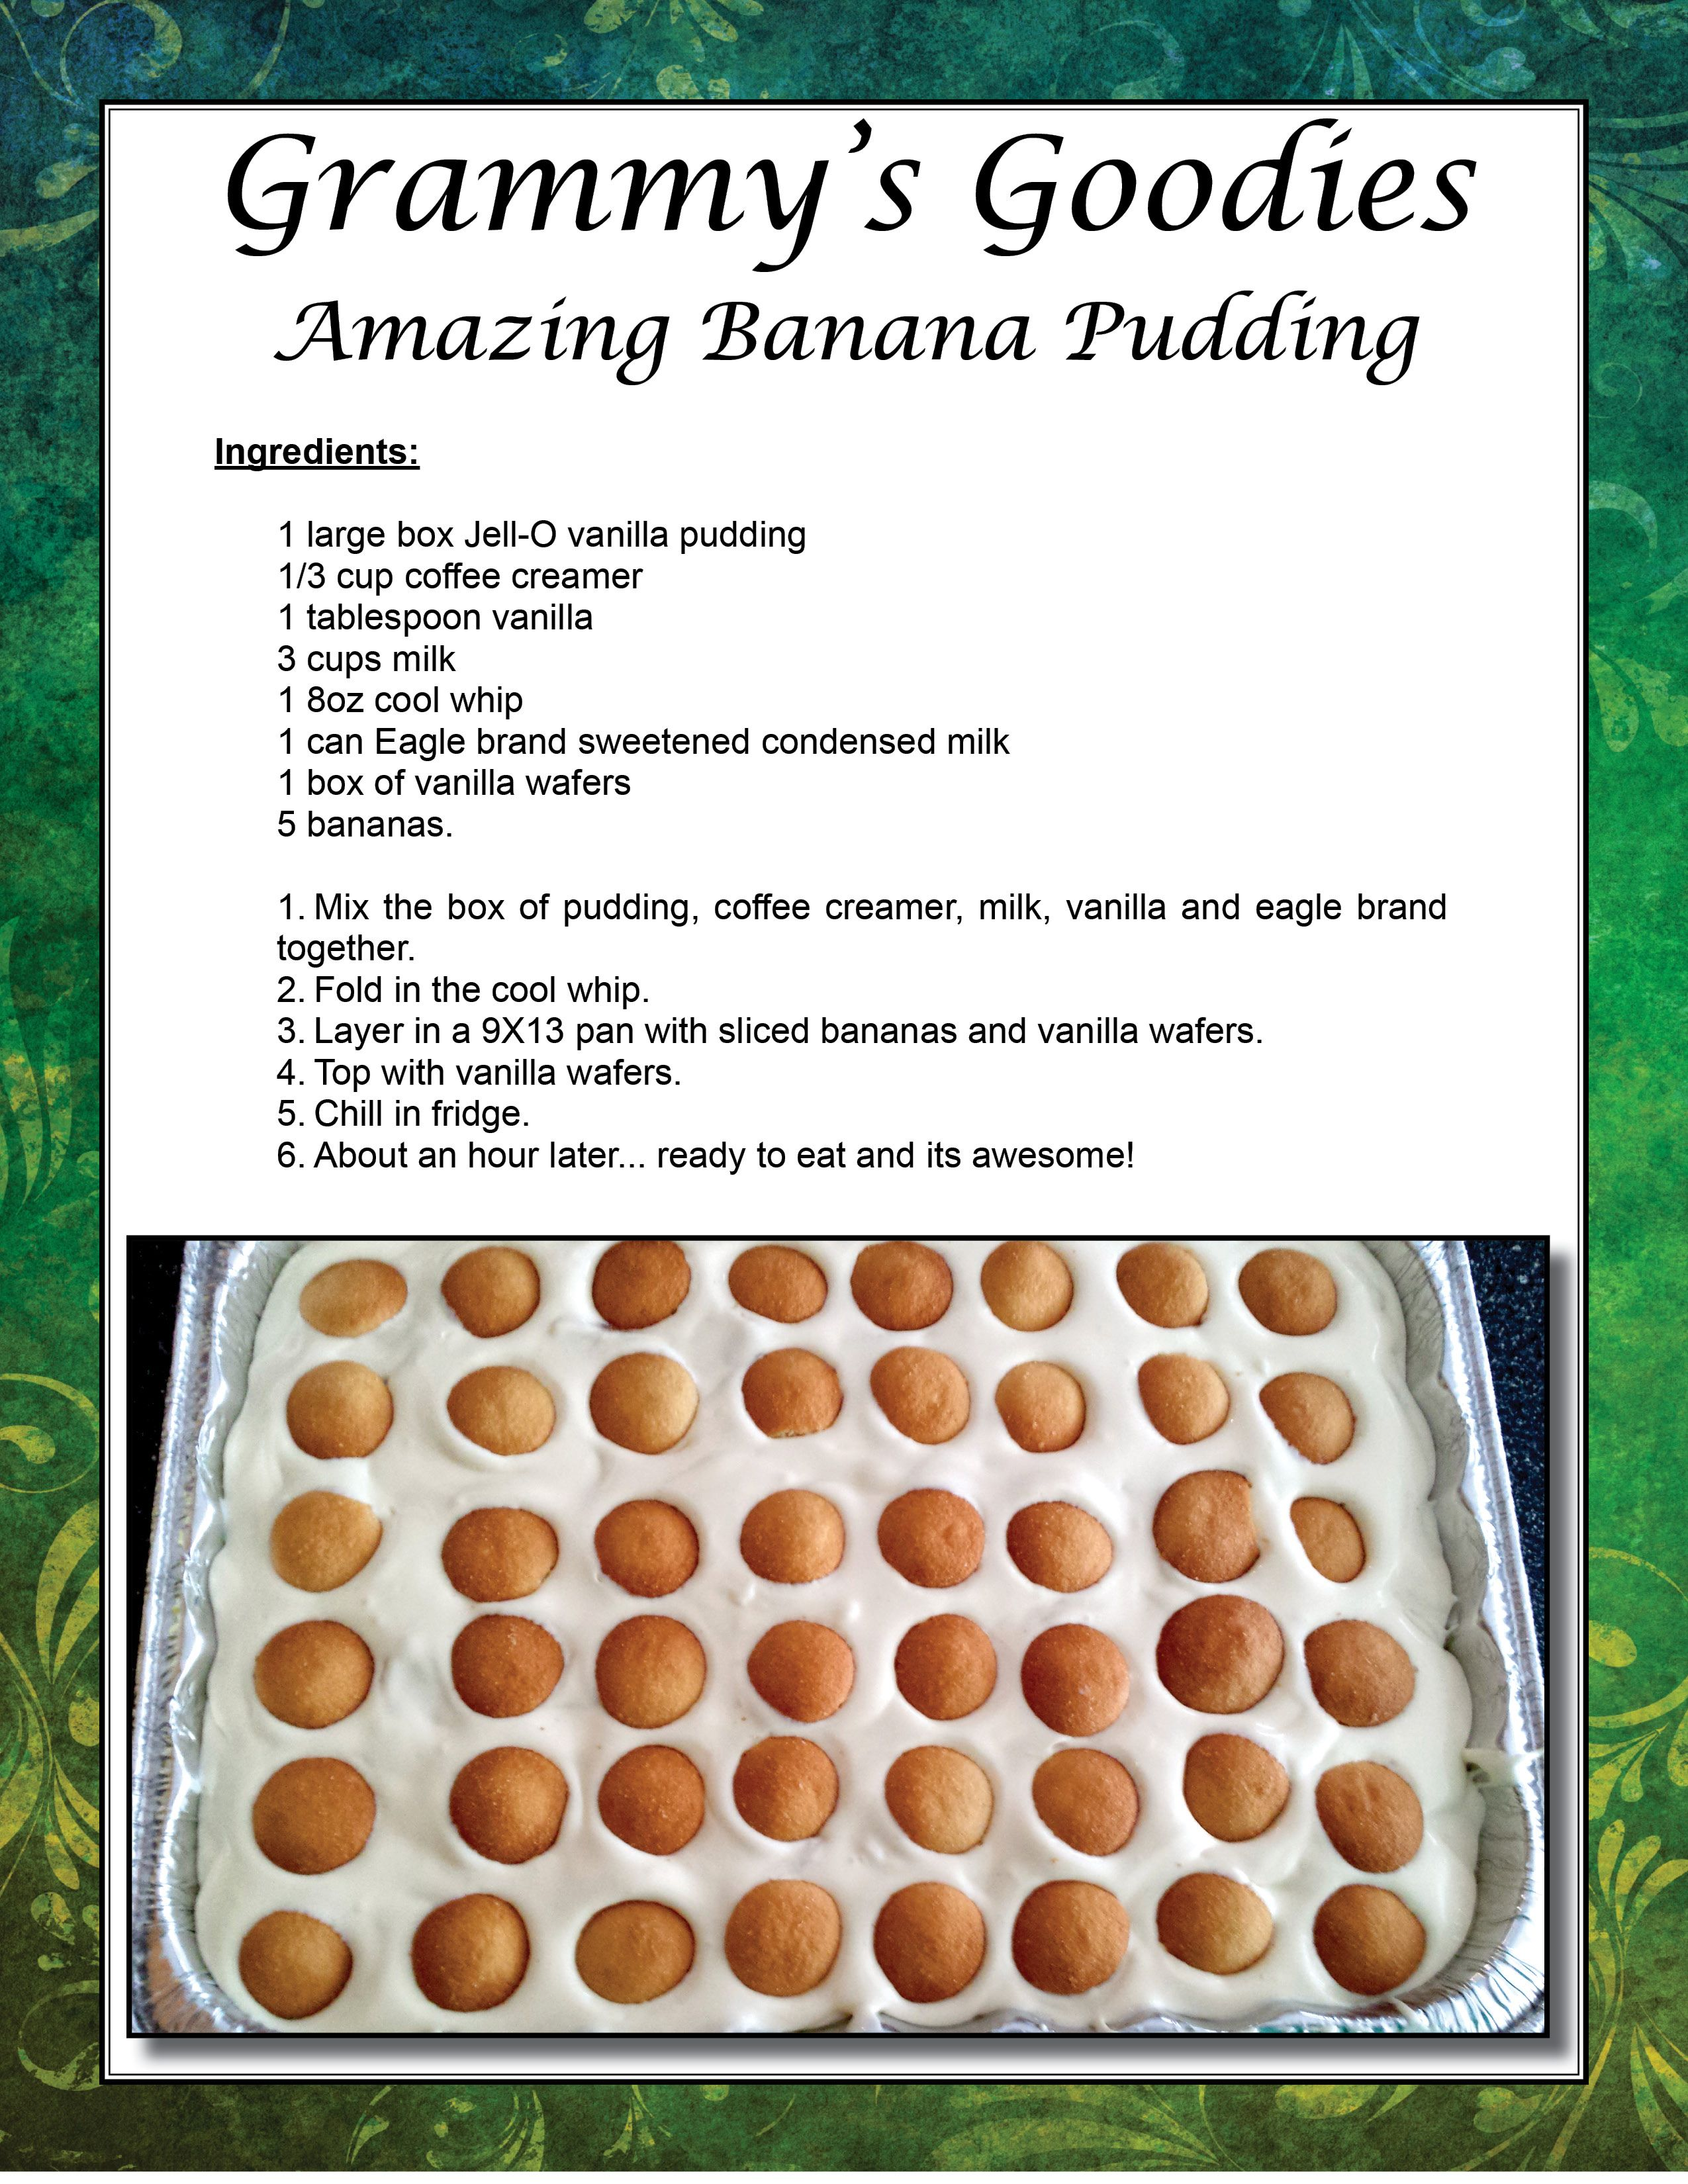 This is an amazing banana pudding recipe my mom gave me.  The best I've ever had!